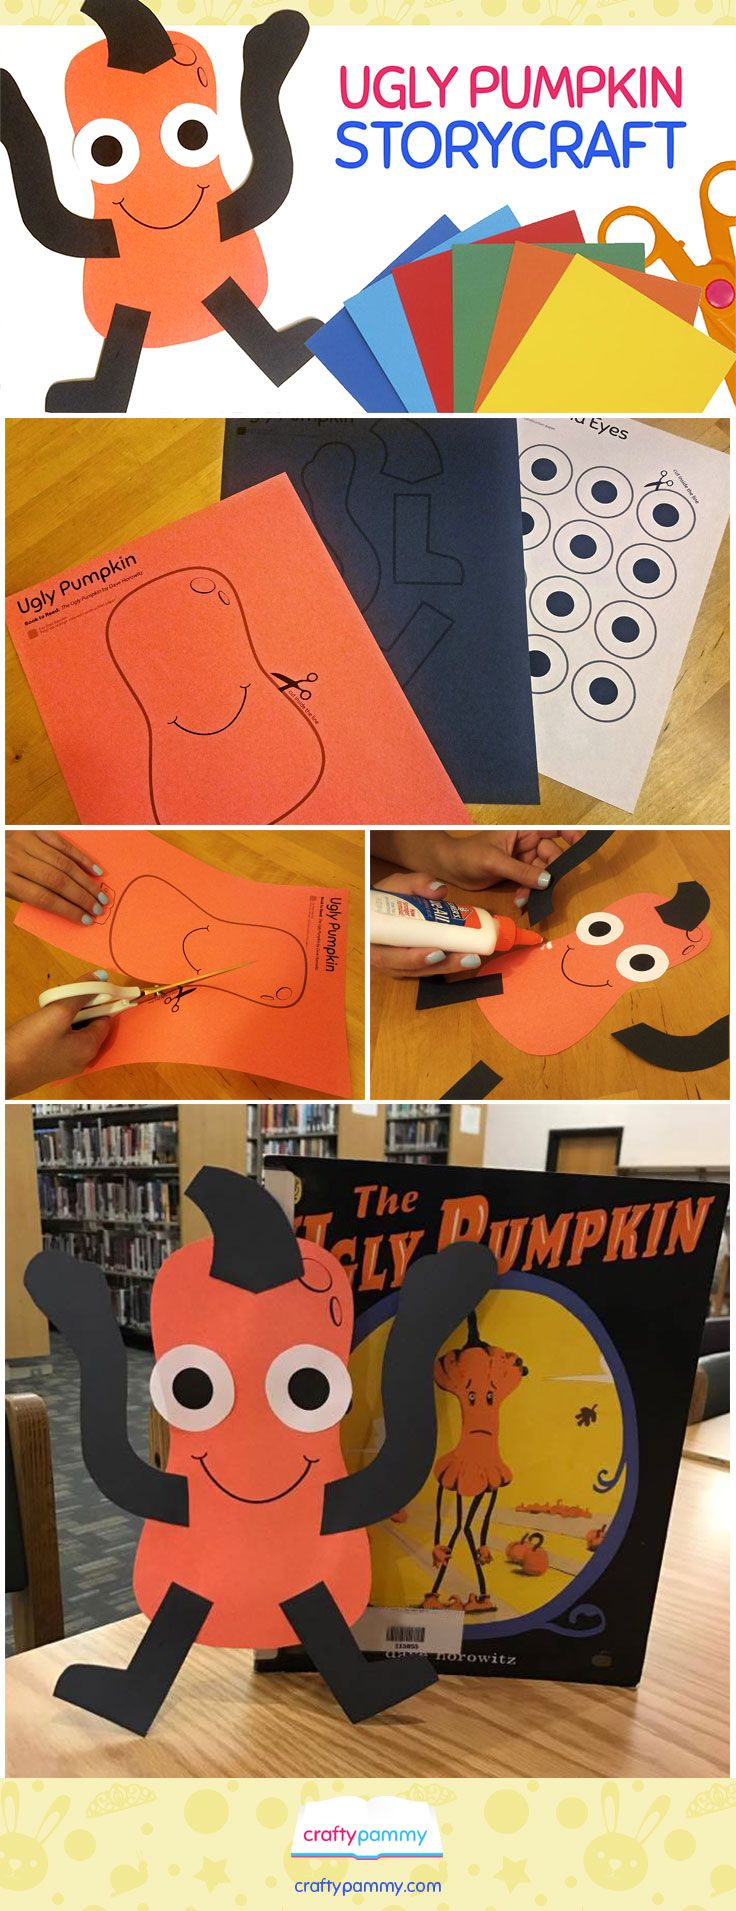 Create an Ugly Pumpkin craft to make along with the picture book: The Ugly Pumpkin by Dave Horowitz.